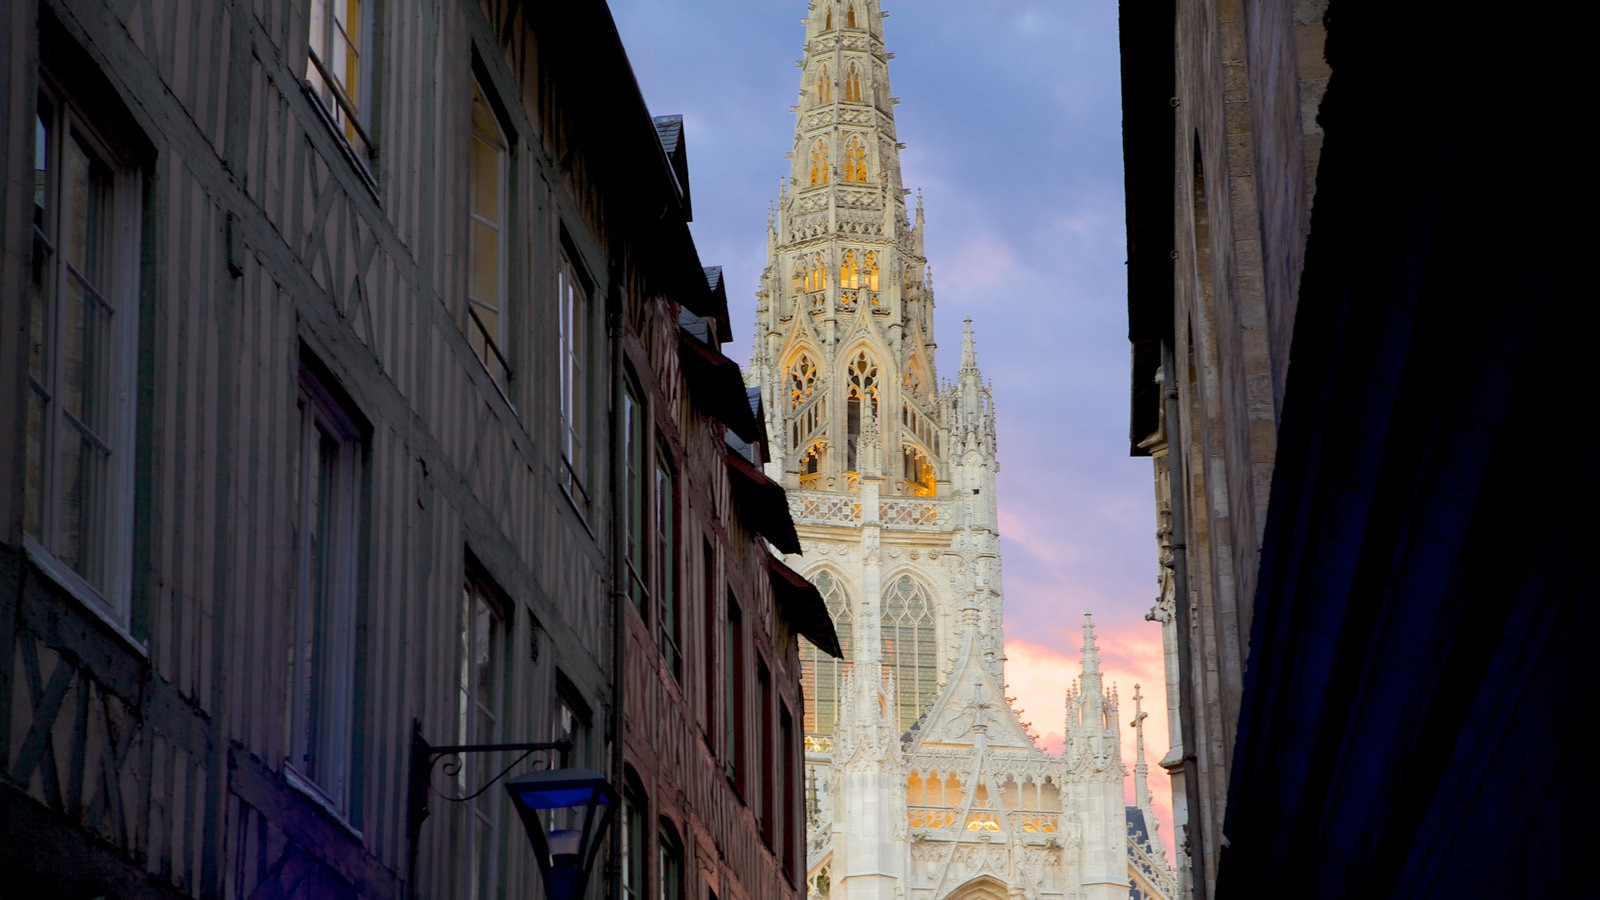 Rouen showing a church or cathedral